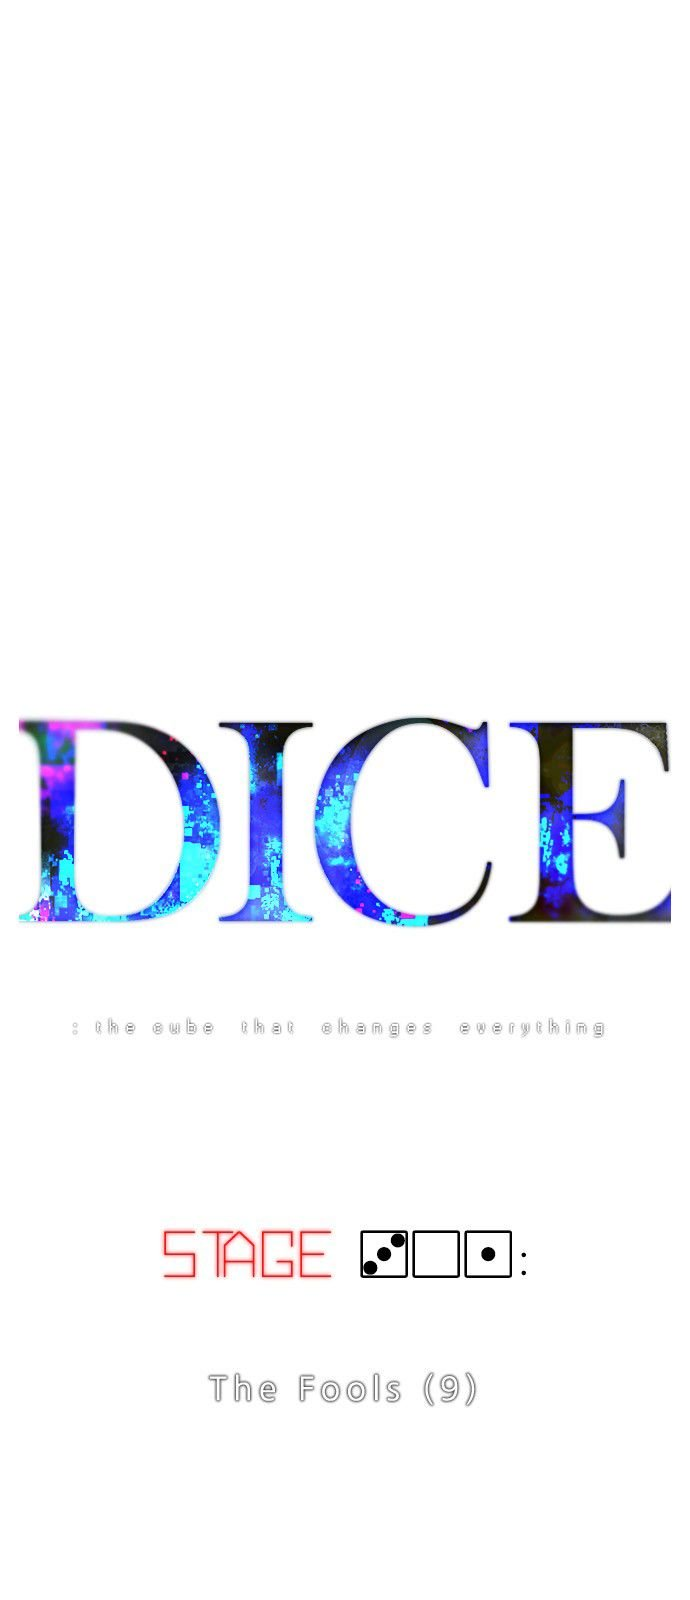 dice_the_cube_that_changes_everything_301_1